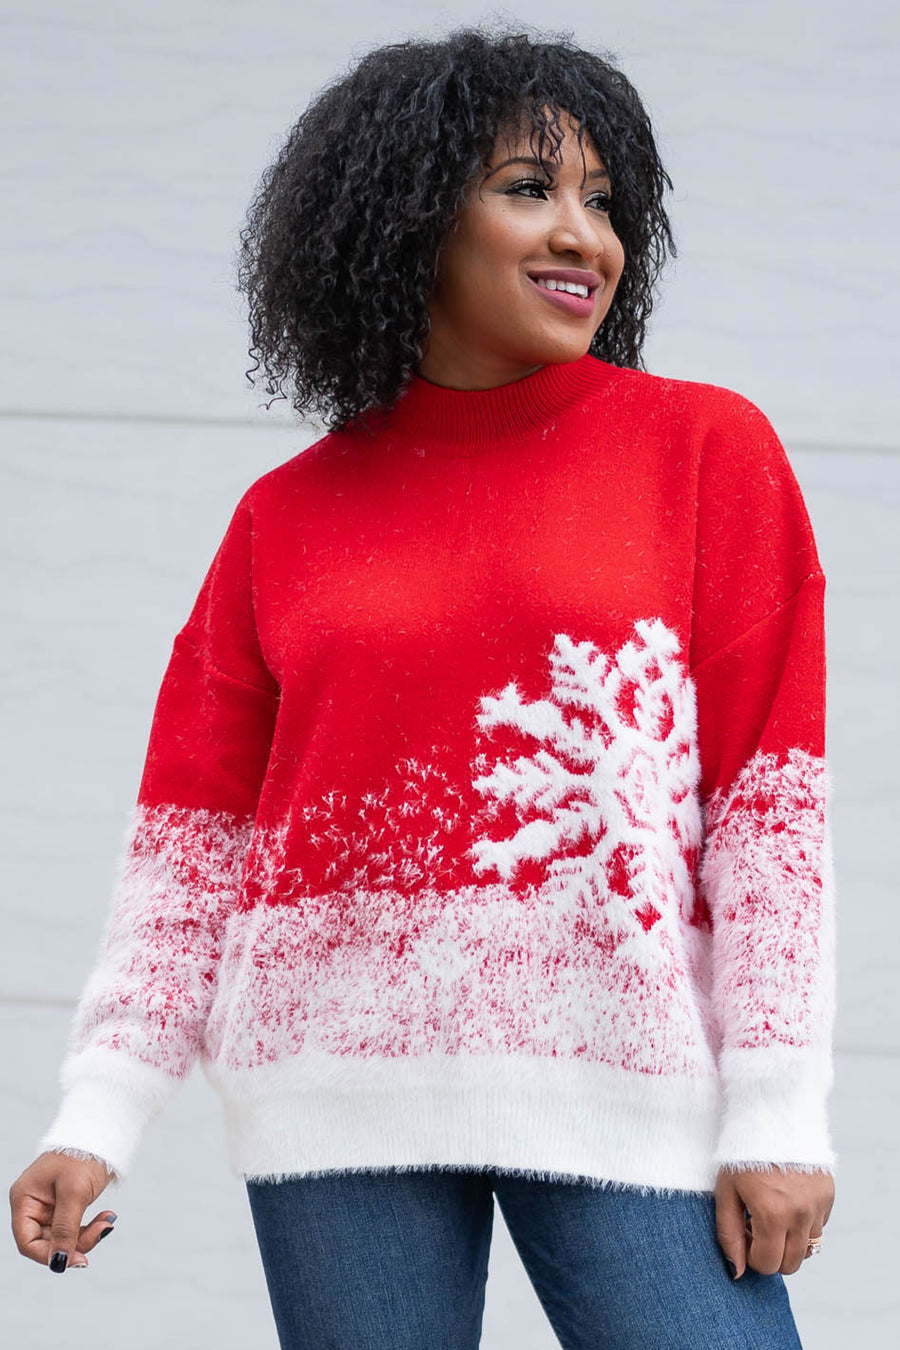 Let It Snow Sweater - Red closet candy womens Christmas snowflake sweater 1